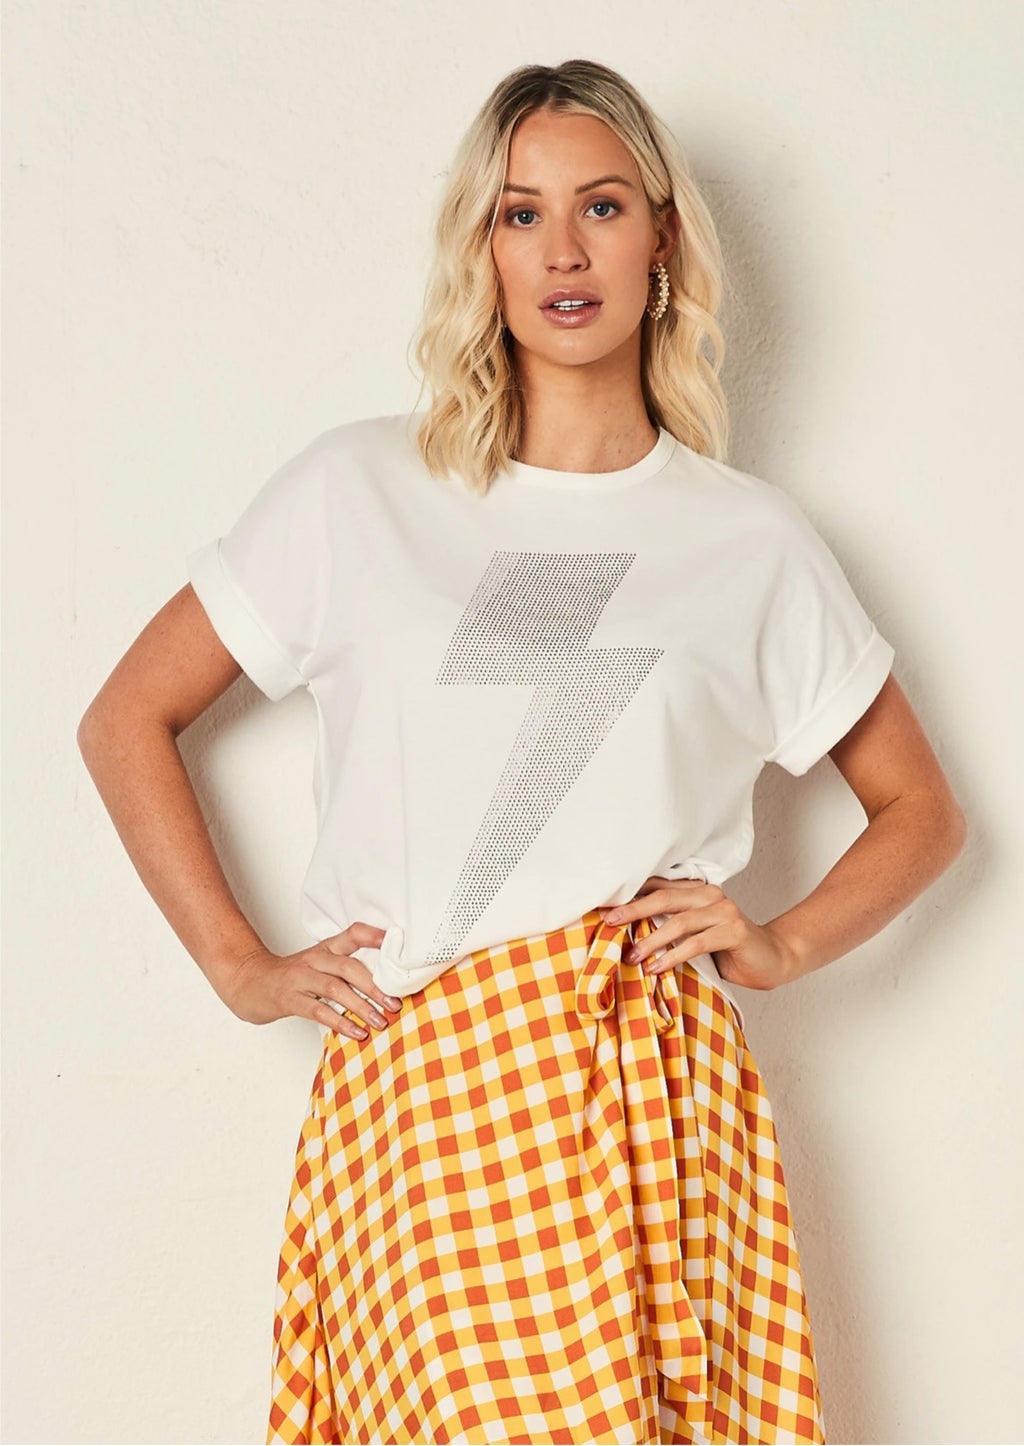 The Relaxed Tee - White with Bolt, by The Others  A beautifully soft, relaxed fit tee that pairs beautifully with our Sunray skirt, or or your favourite denims.  Details:  Crew Neck  100% Cotton